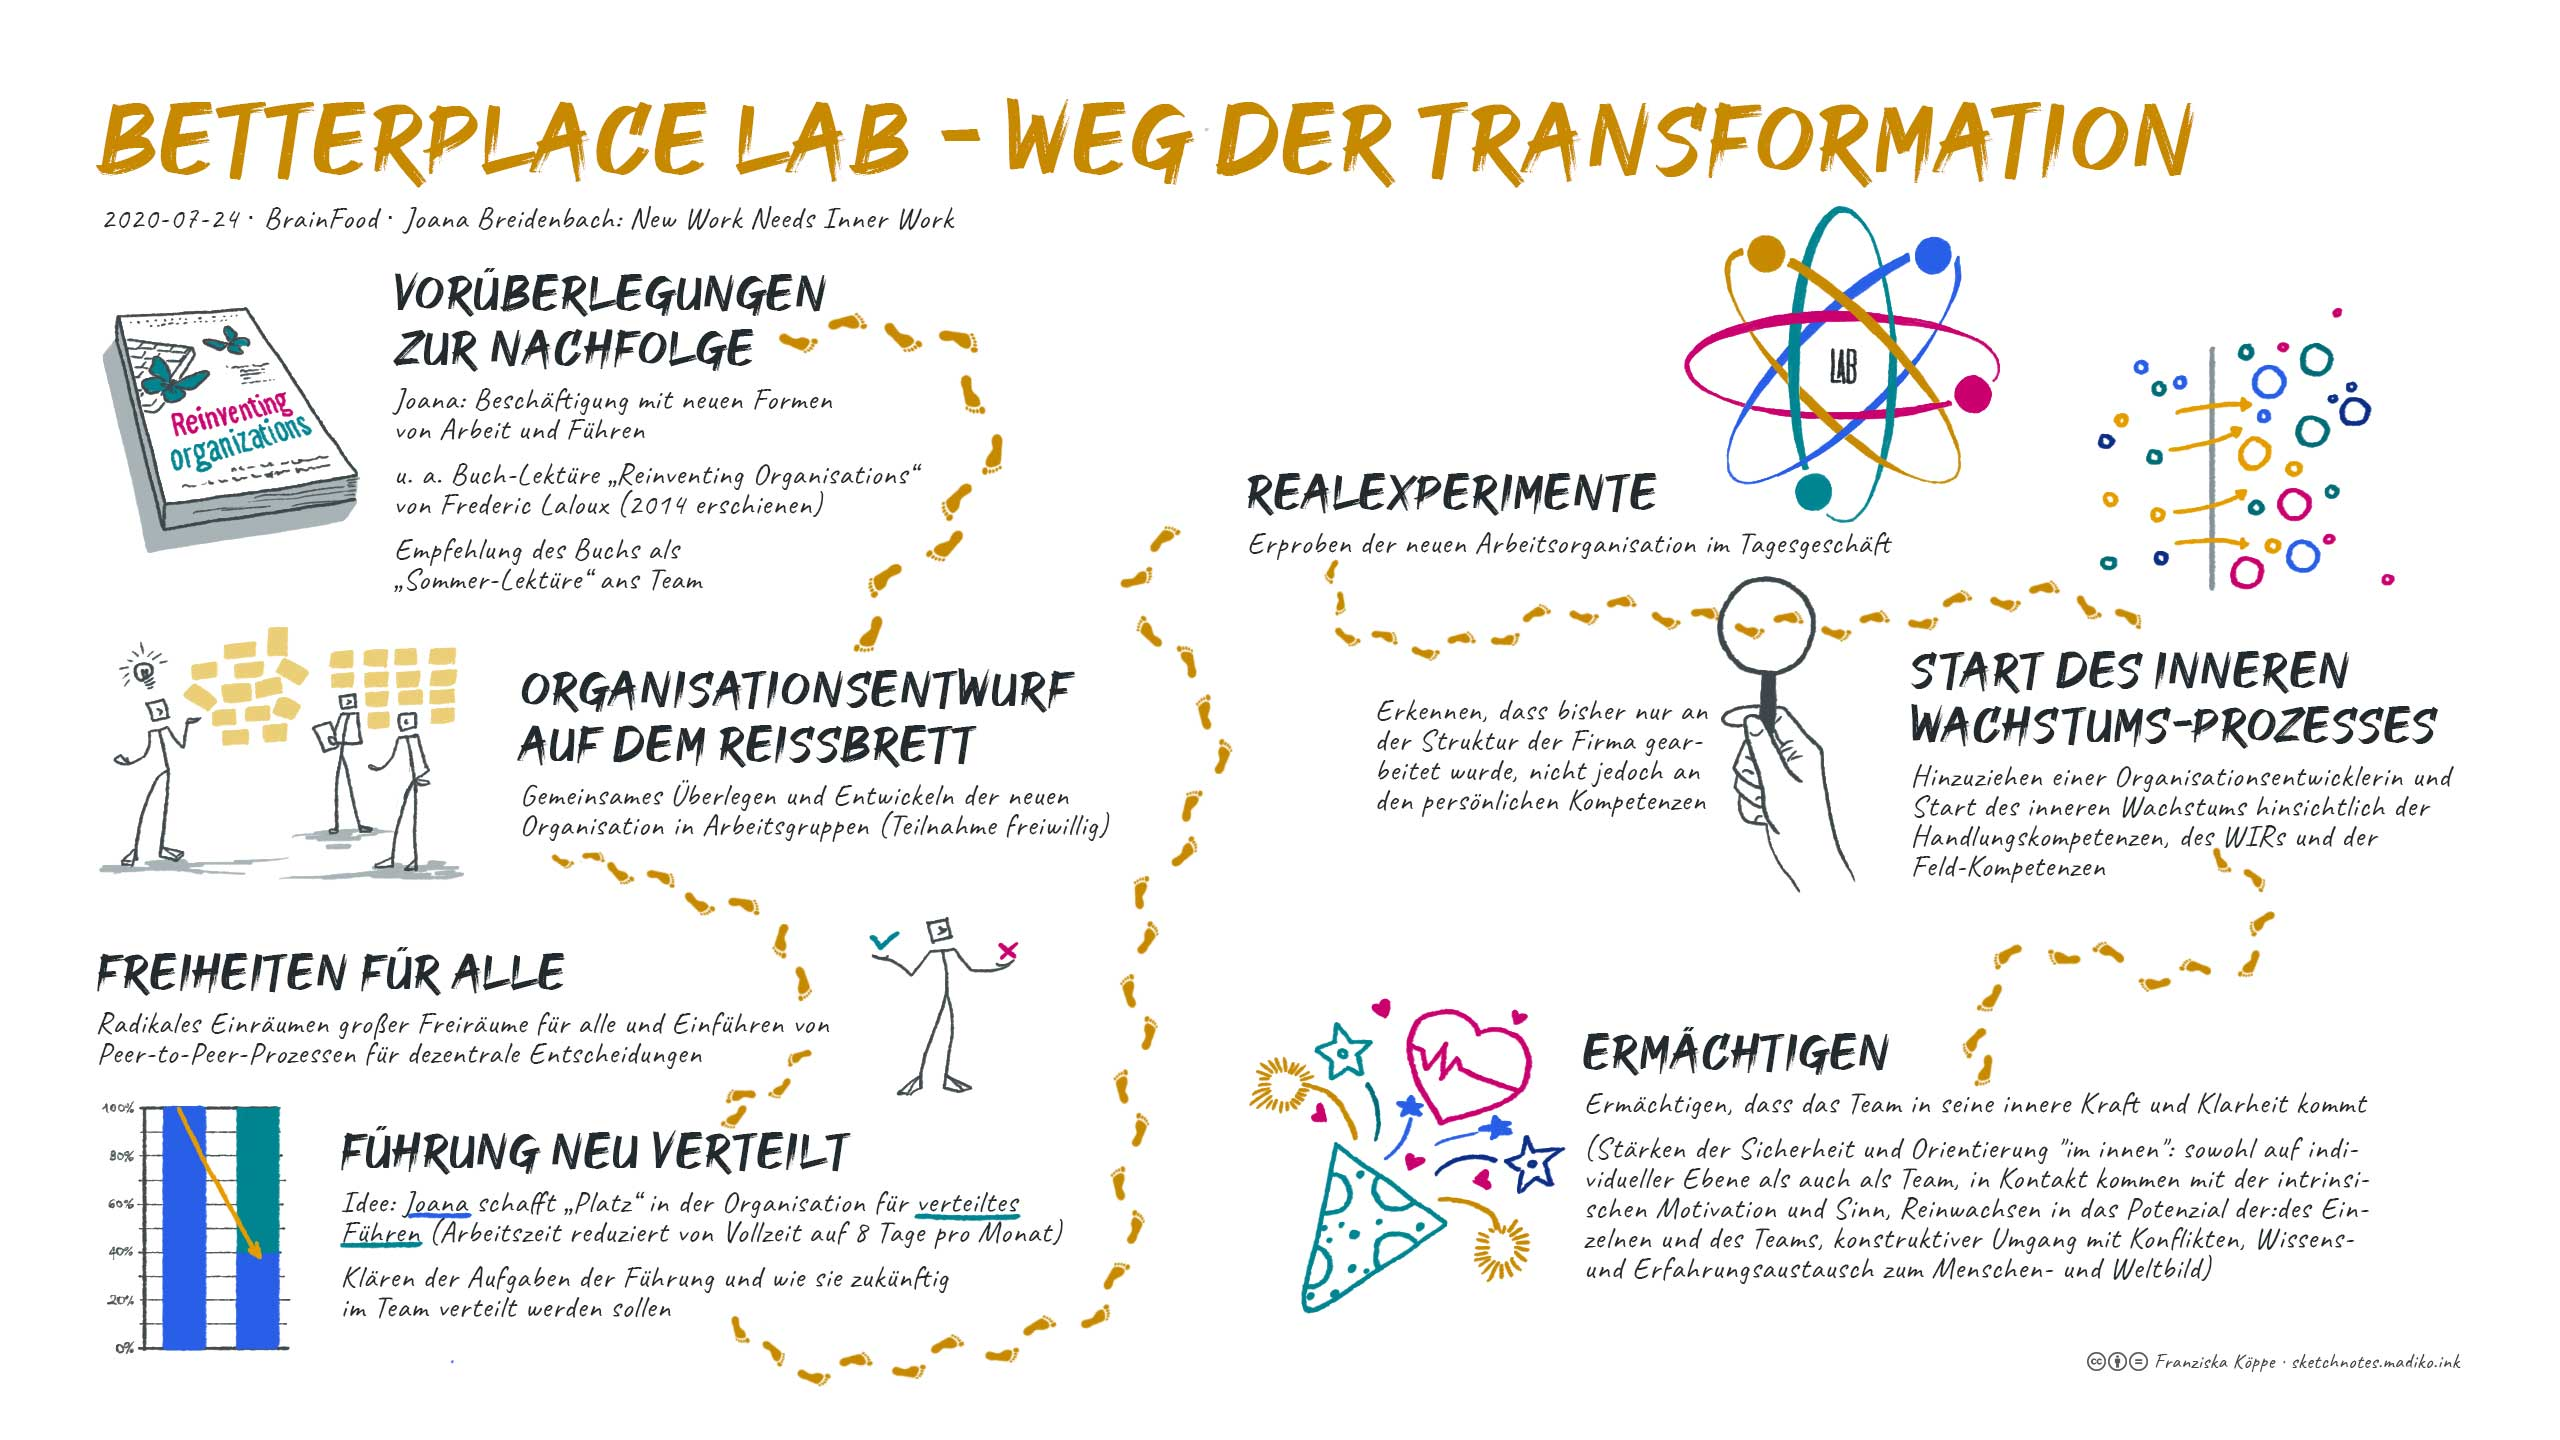 2020-07: BrainFood 'New Work needs Inner Work' <br> Sketchnotes: betterplace lab - Weg der Transformation. Bild: cc Franziska Köppe | madiko